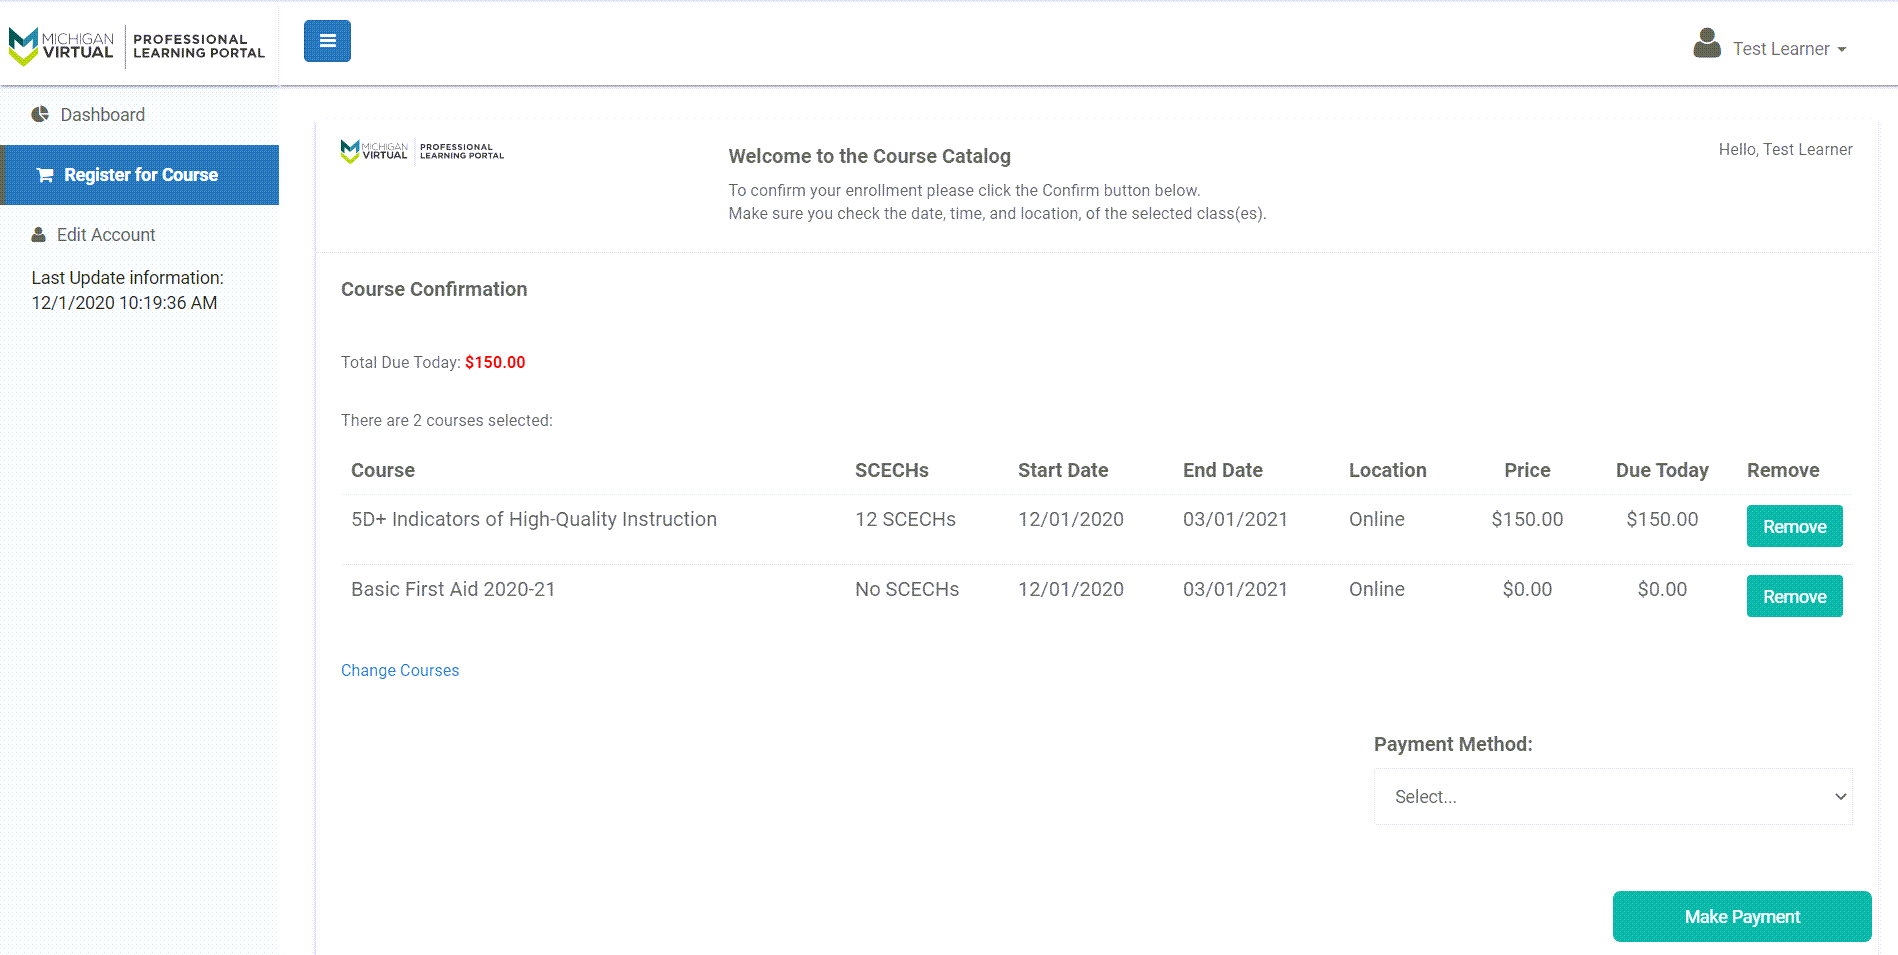 The payment confirmation page is shown with two courses selected, one free and the other for a cost. The Make Payment button is shown at the bottom of the page.